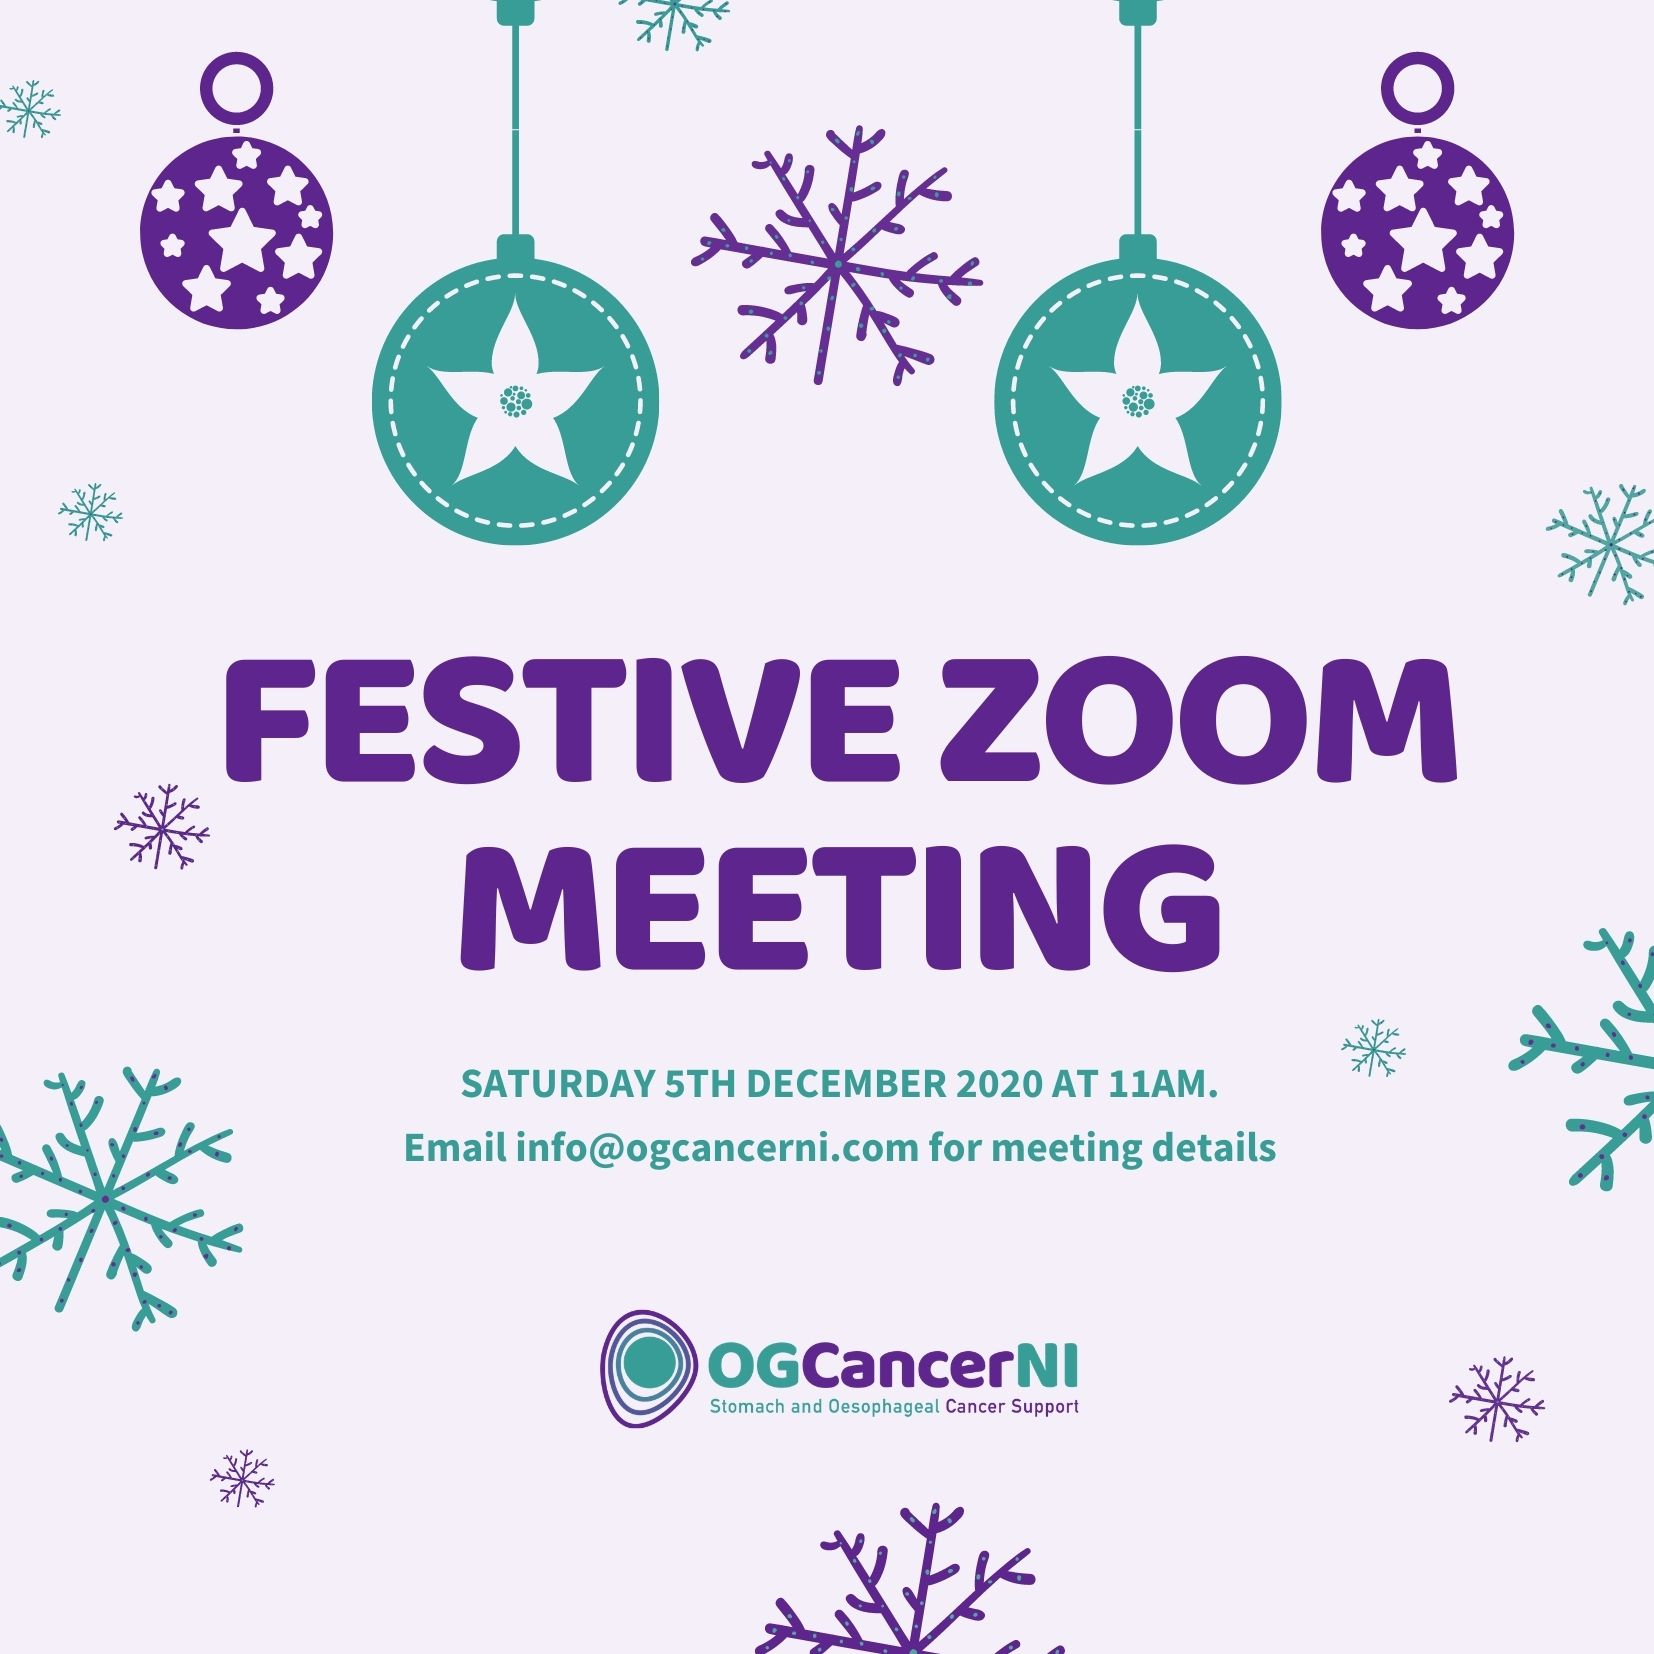 Festive Zoom Meeting